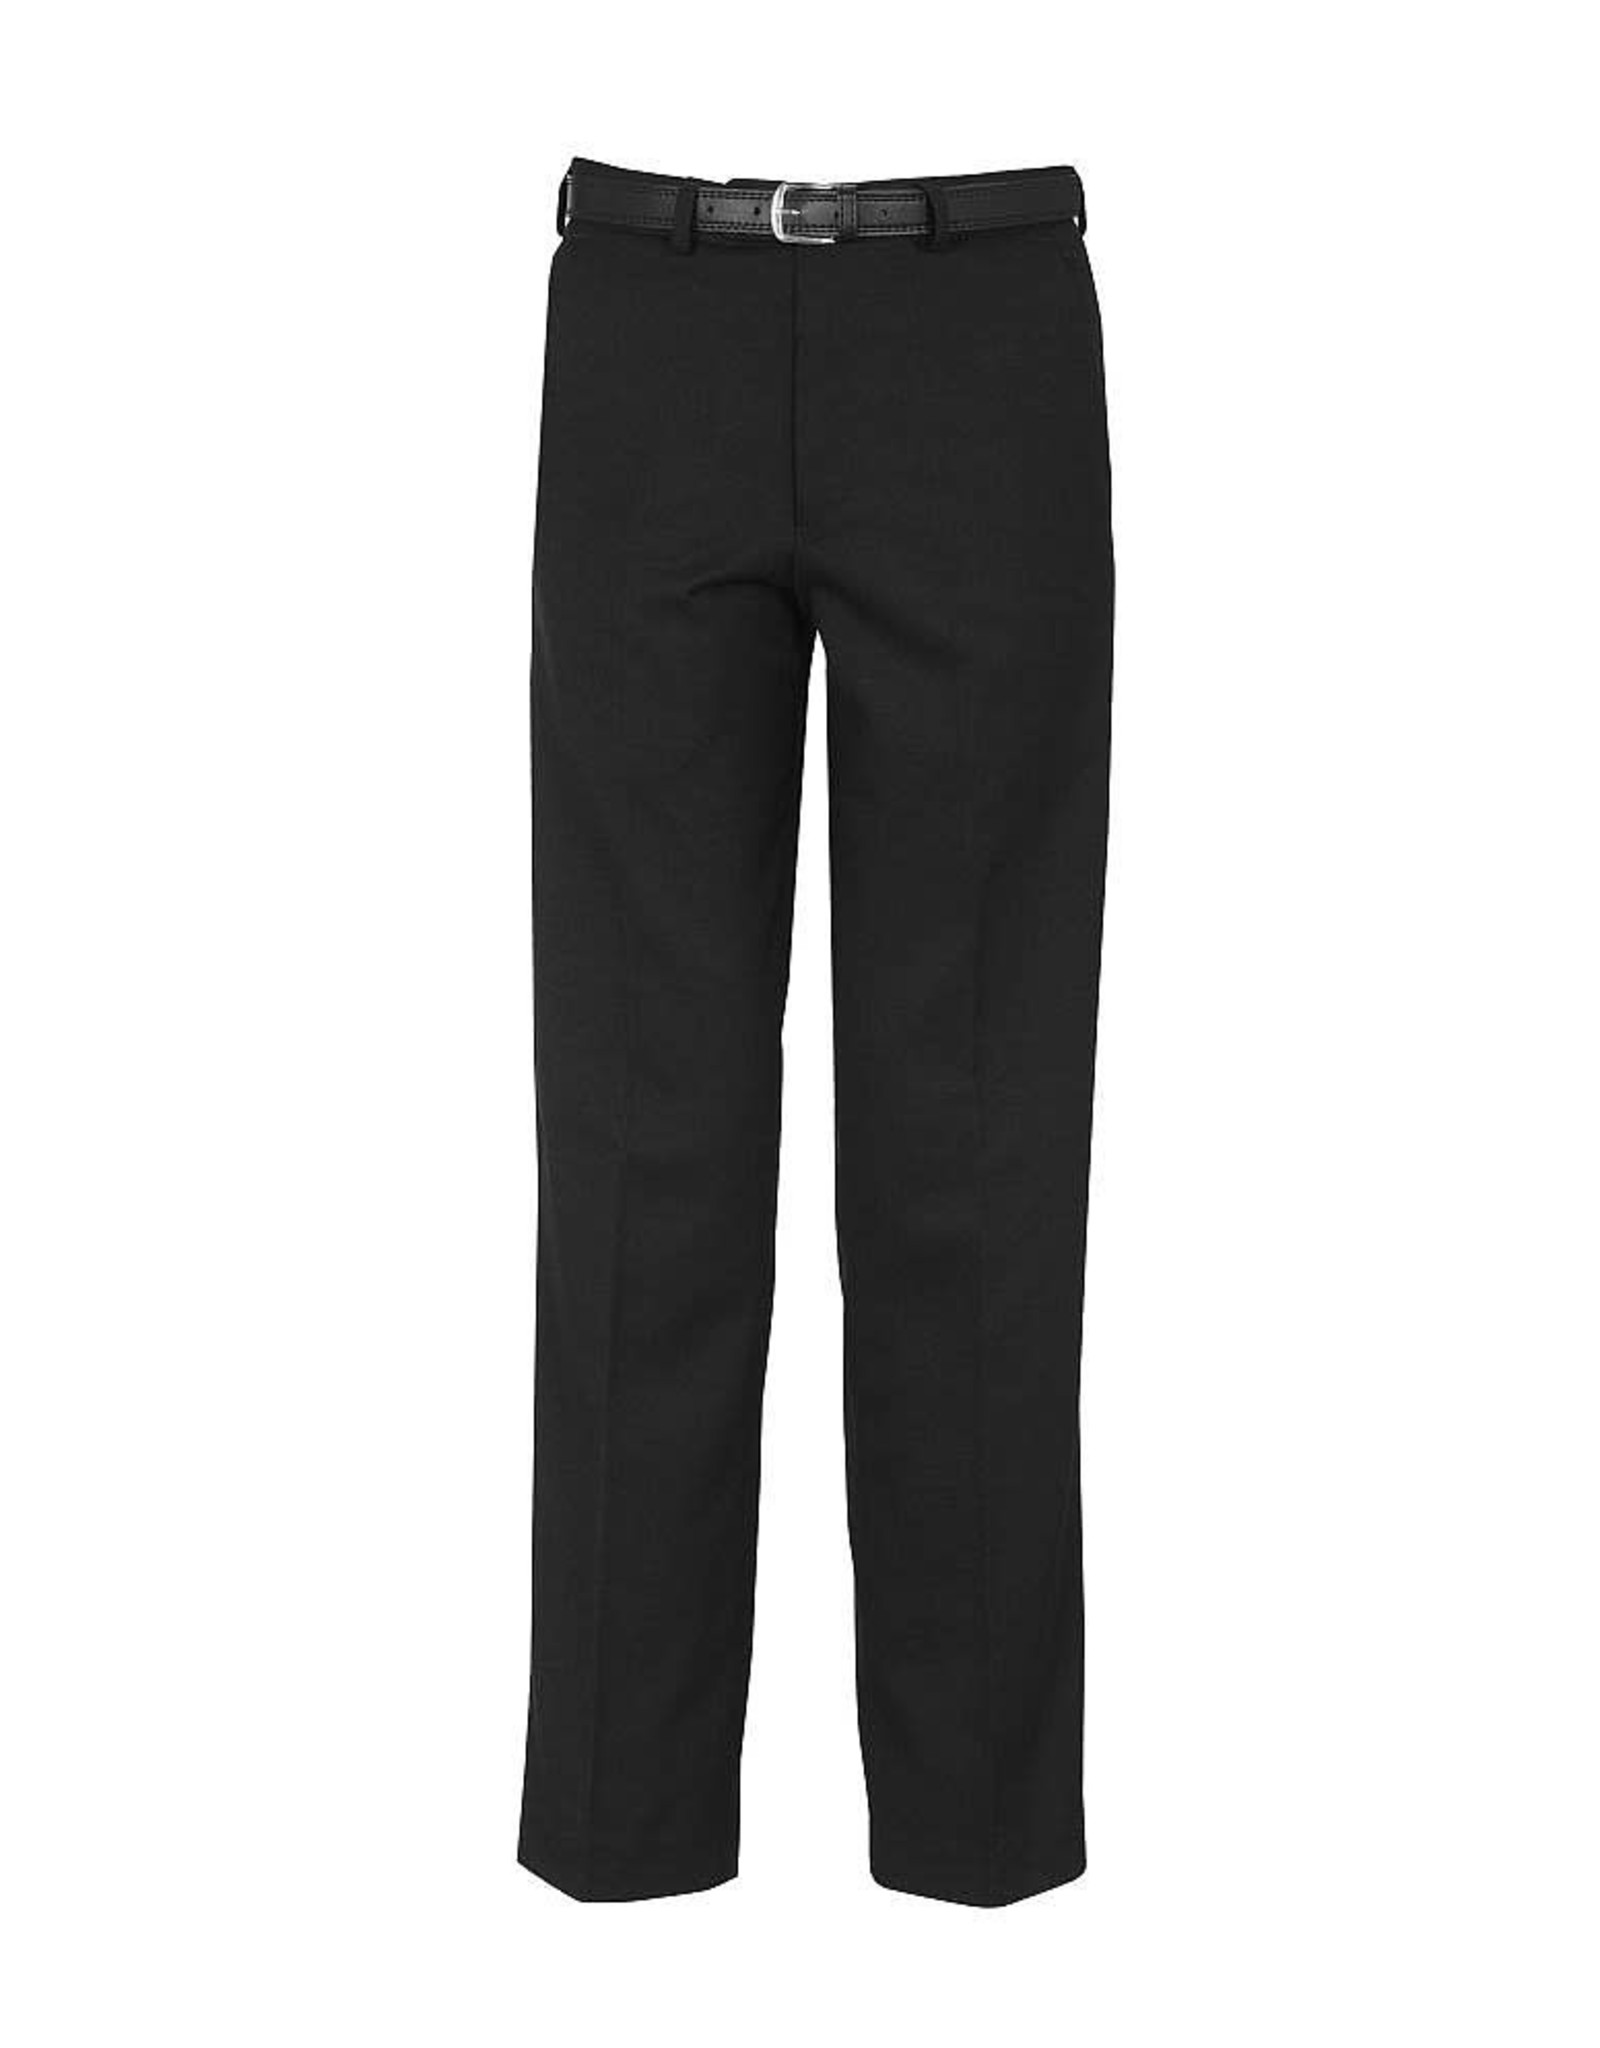 Boys Falmouth Flat Front Trousers - Child Size-Nicholas Chamberlaine School